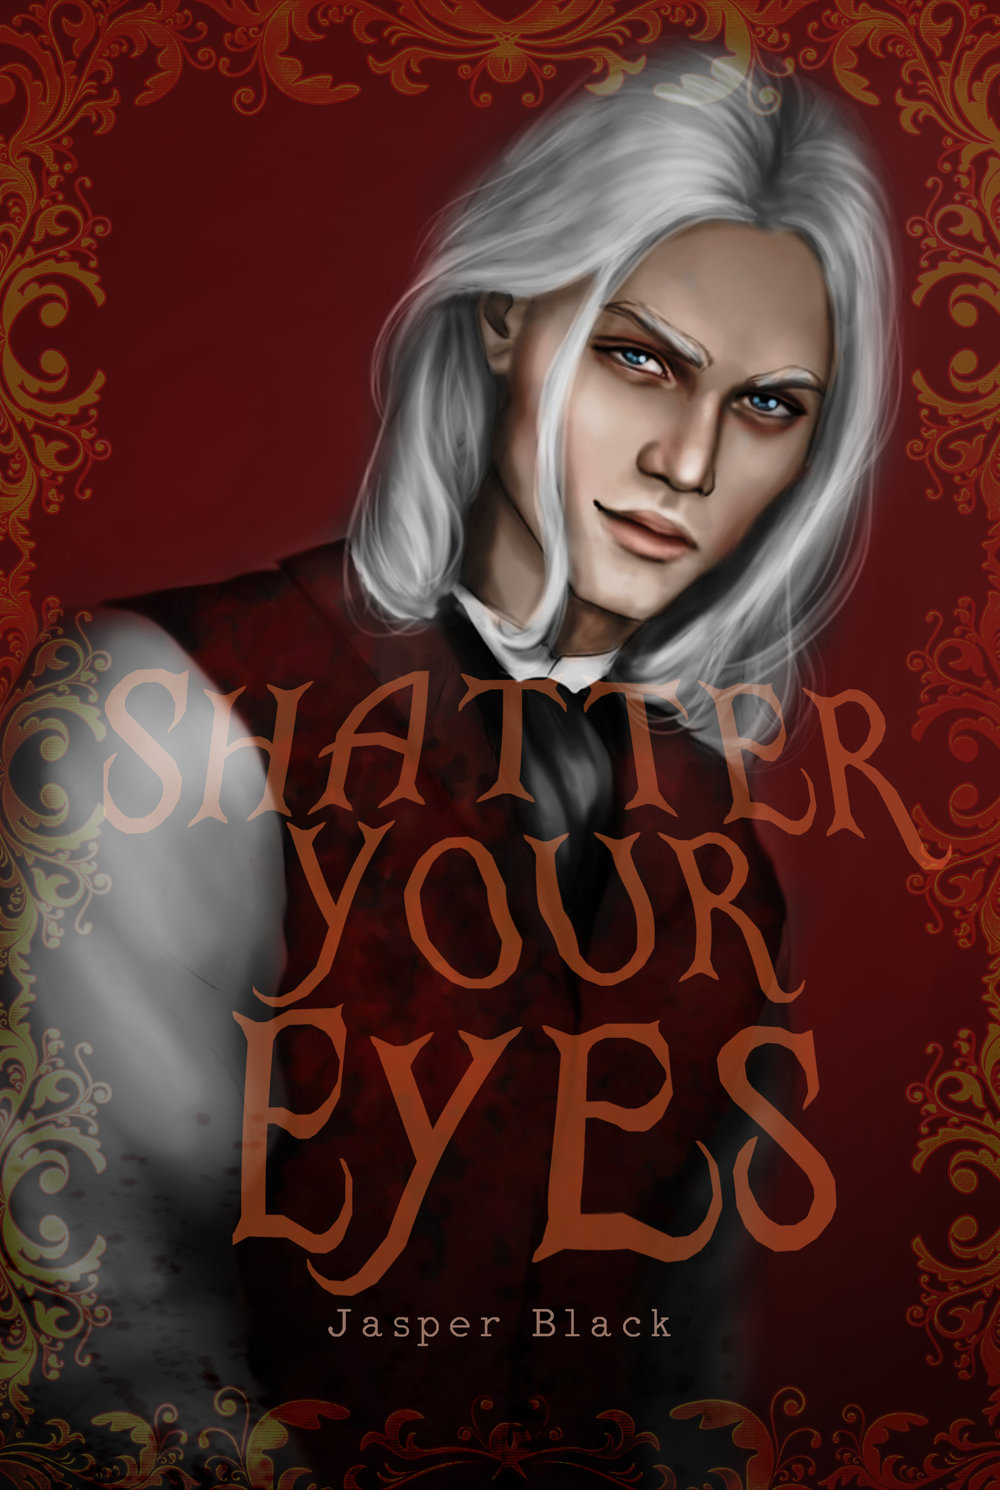 Book #4 - Shatter Your Eyes (TBA)